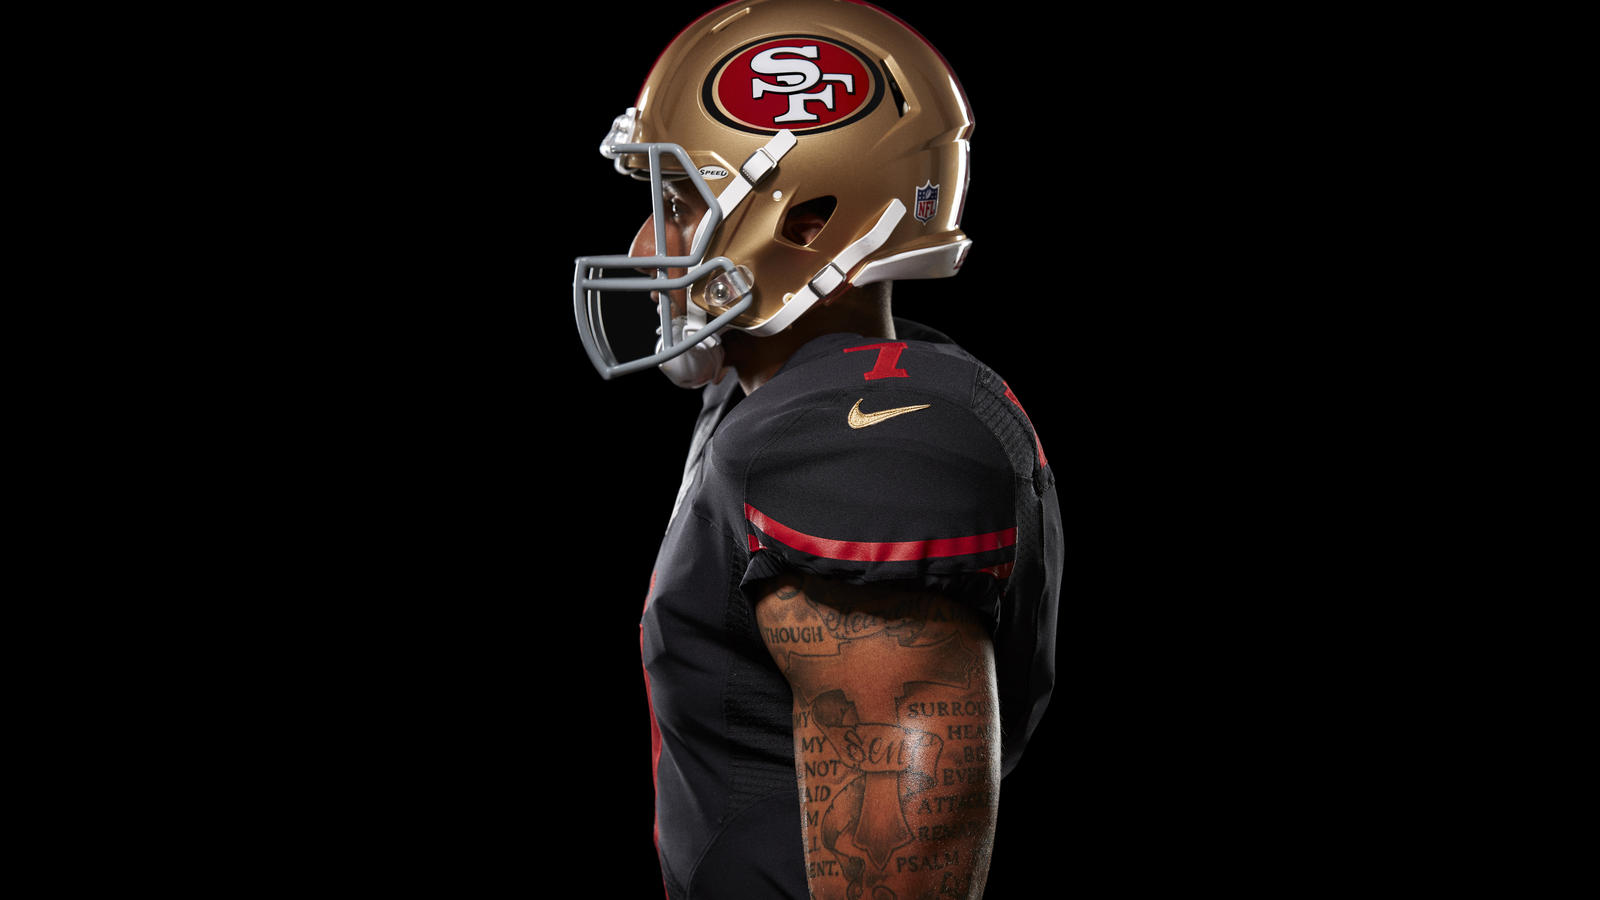 San Francisco 49ers Wallpaper Iphone All Black Everything The San Francisco 49ers New